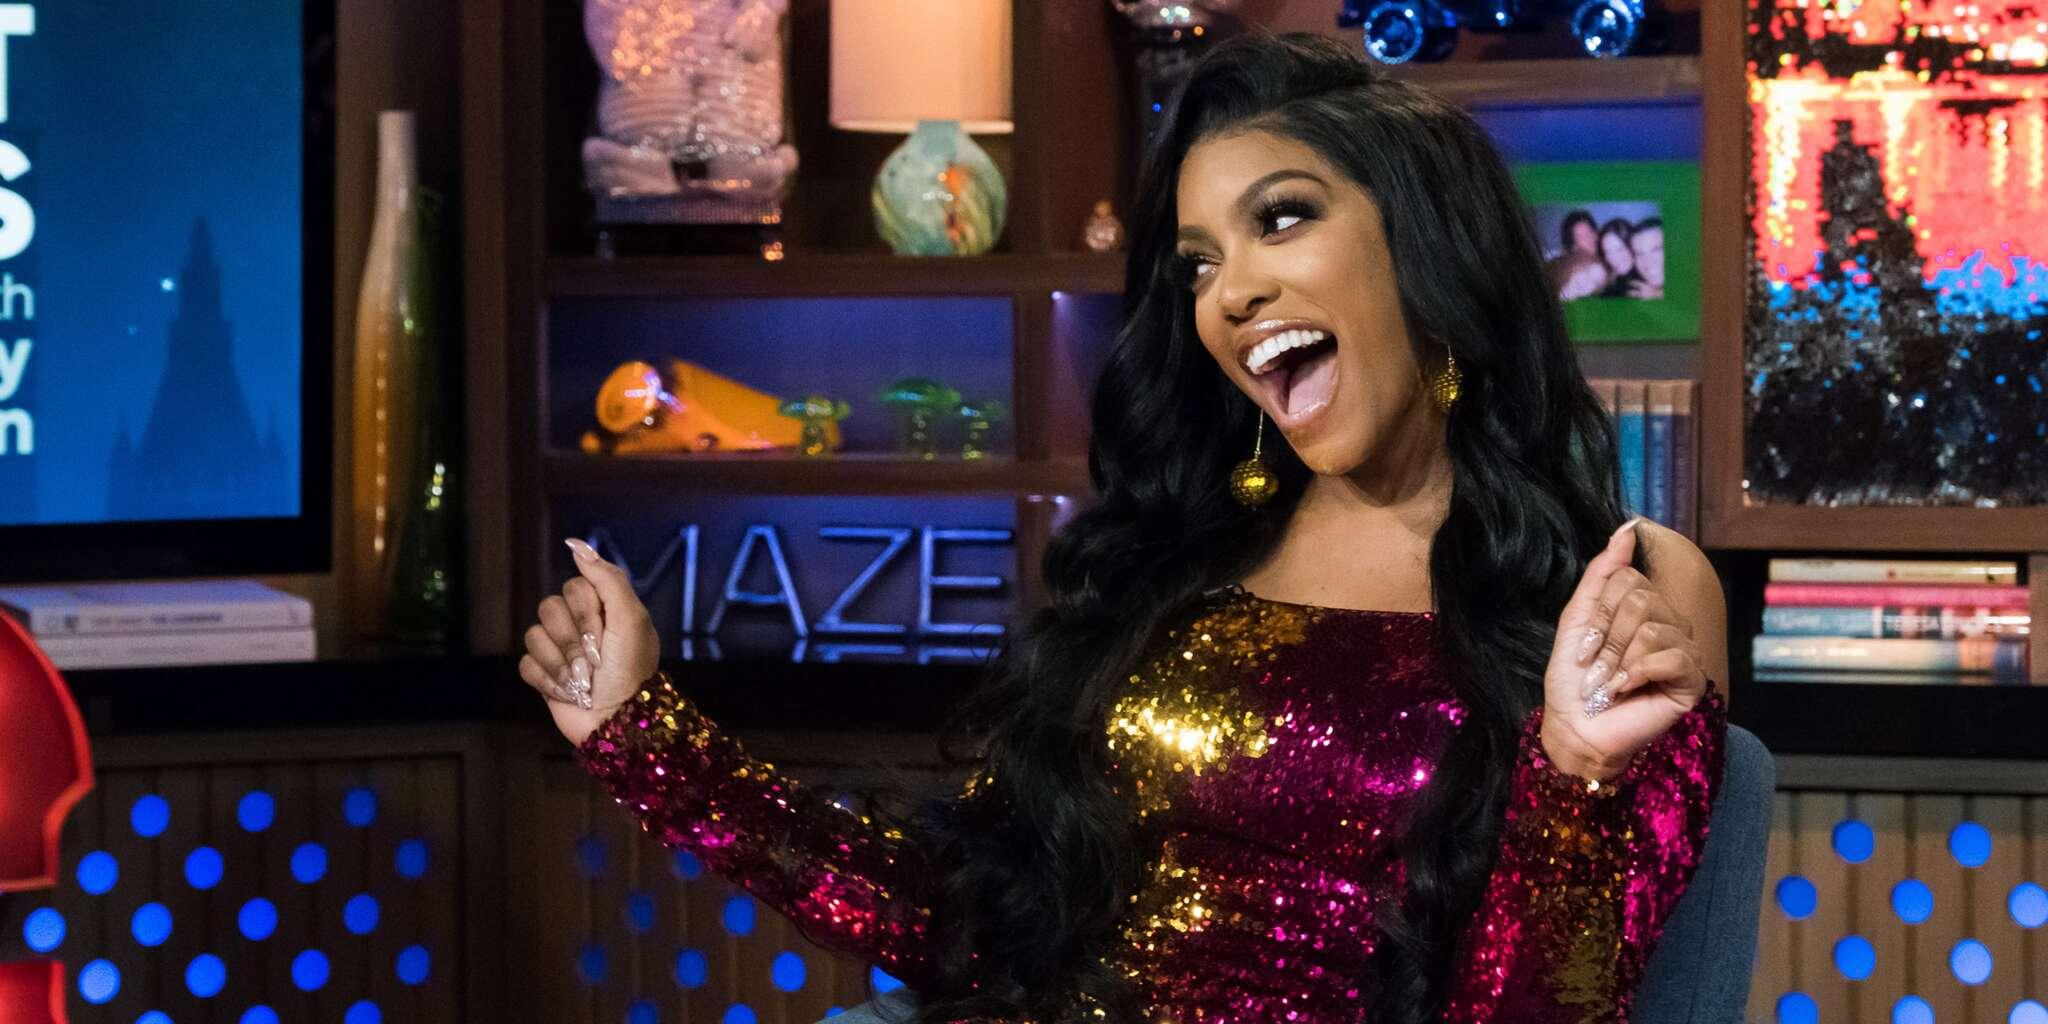 Porsha Williams Shocks Fans With Her Long Nails - Check Out Her Post Below